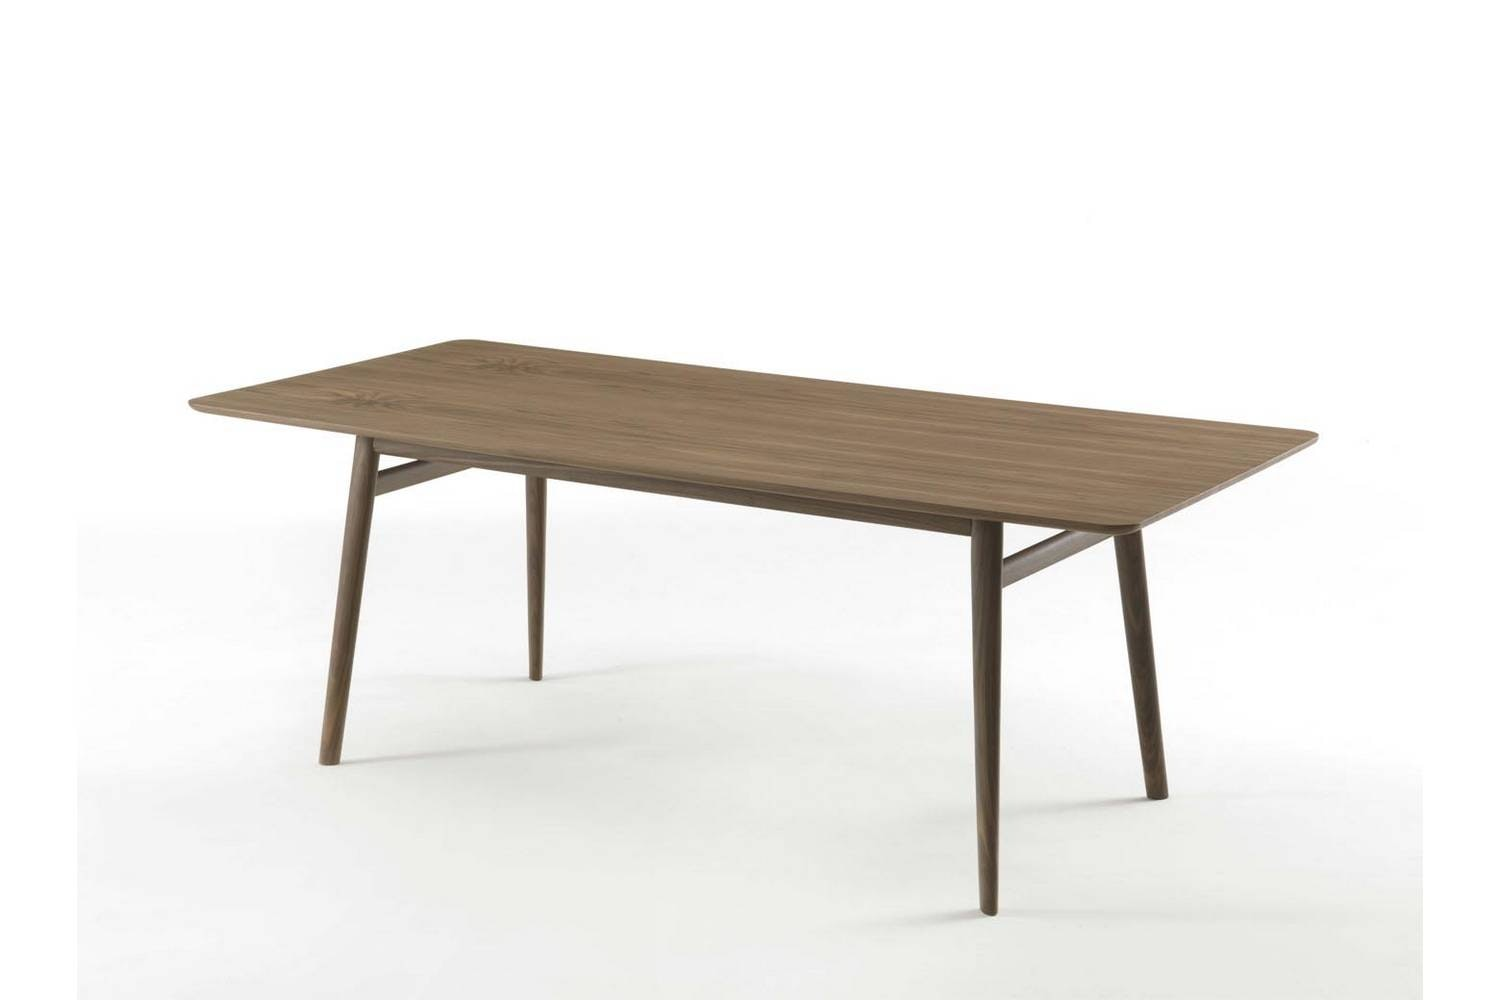 Turn Table by H. S. Jakobsen for Porada